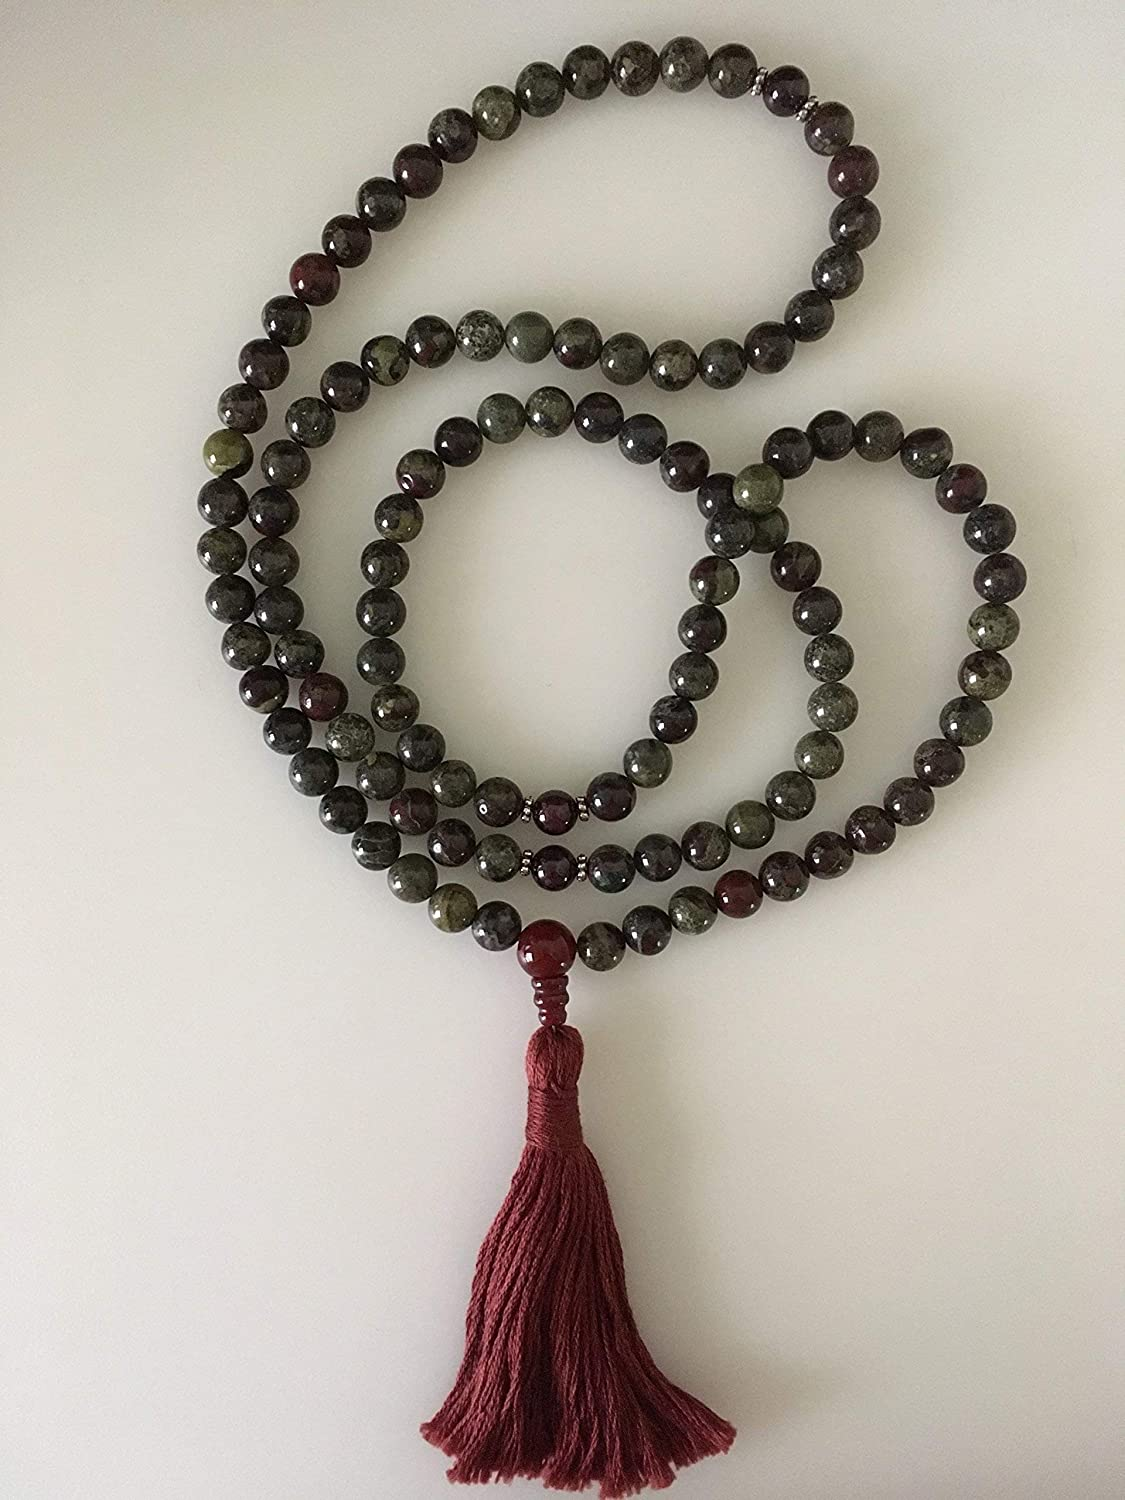 Dragon's Blood Jasper and Garnet Mala // Prayer Beads with Tassel // 108 Beads // Meditation // Handmade in Louisiana by Katog Ratna Ling